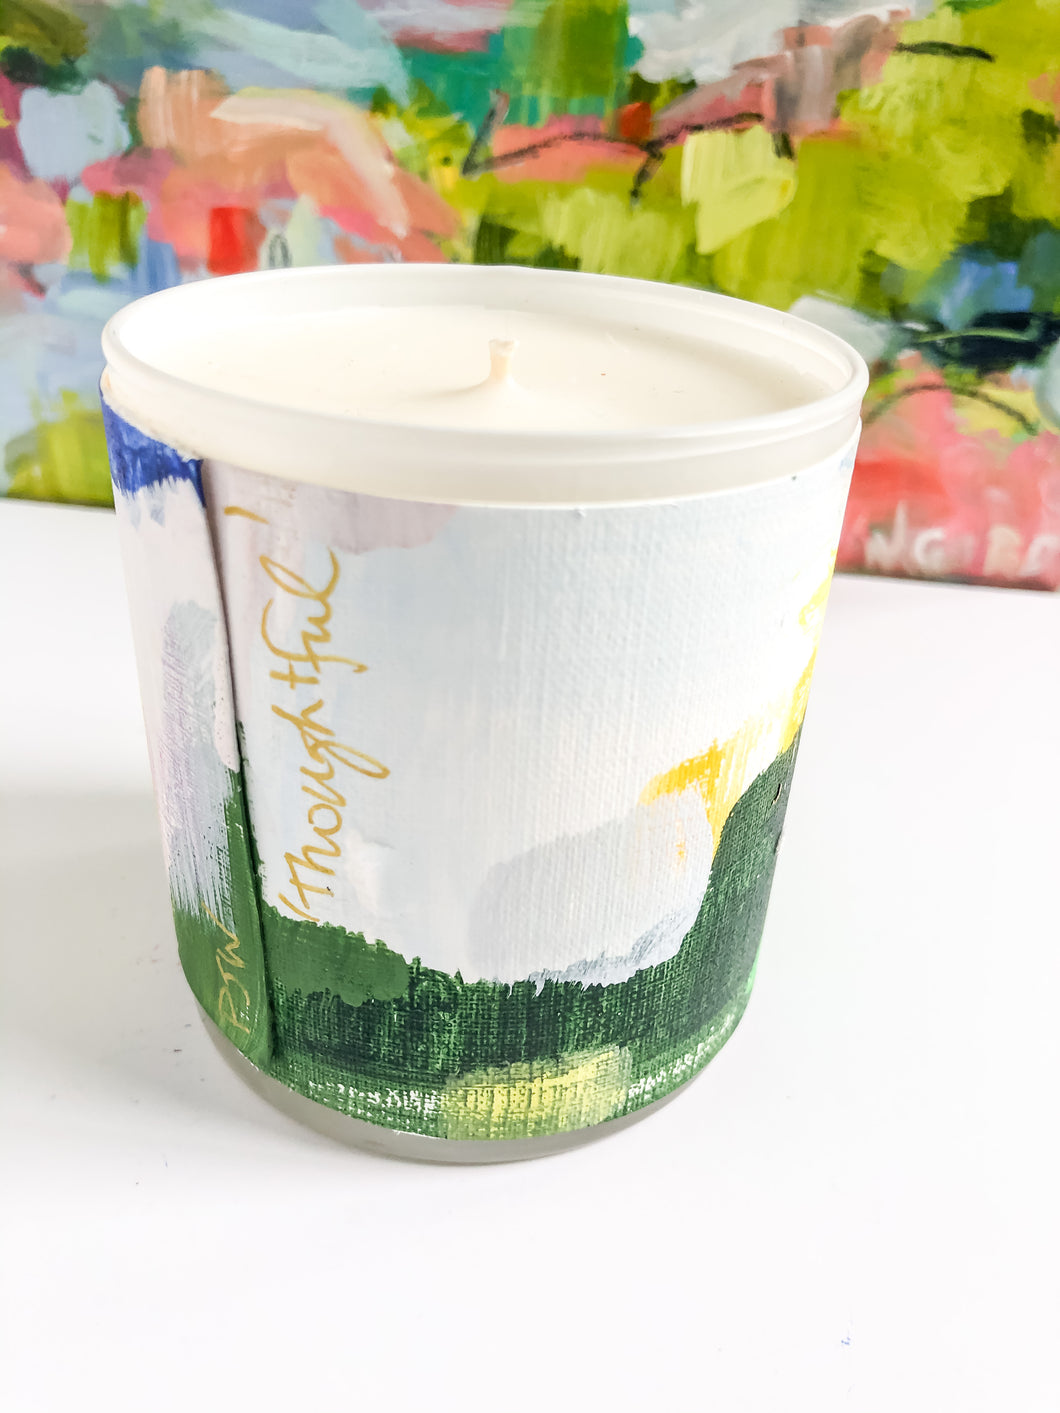 ORIGINAL FINE ART WRAPPED CANDLE: NINE